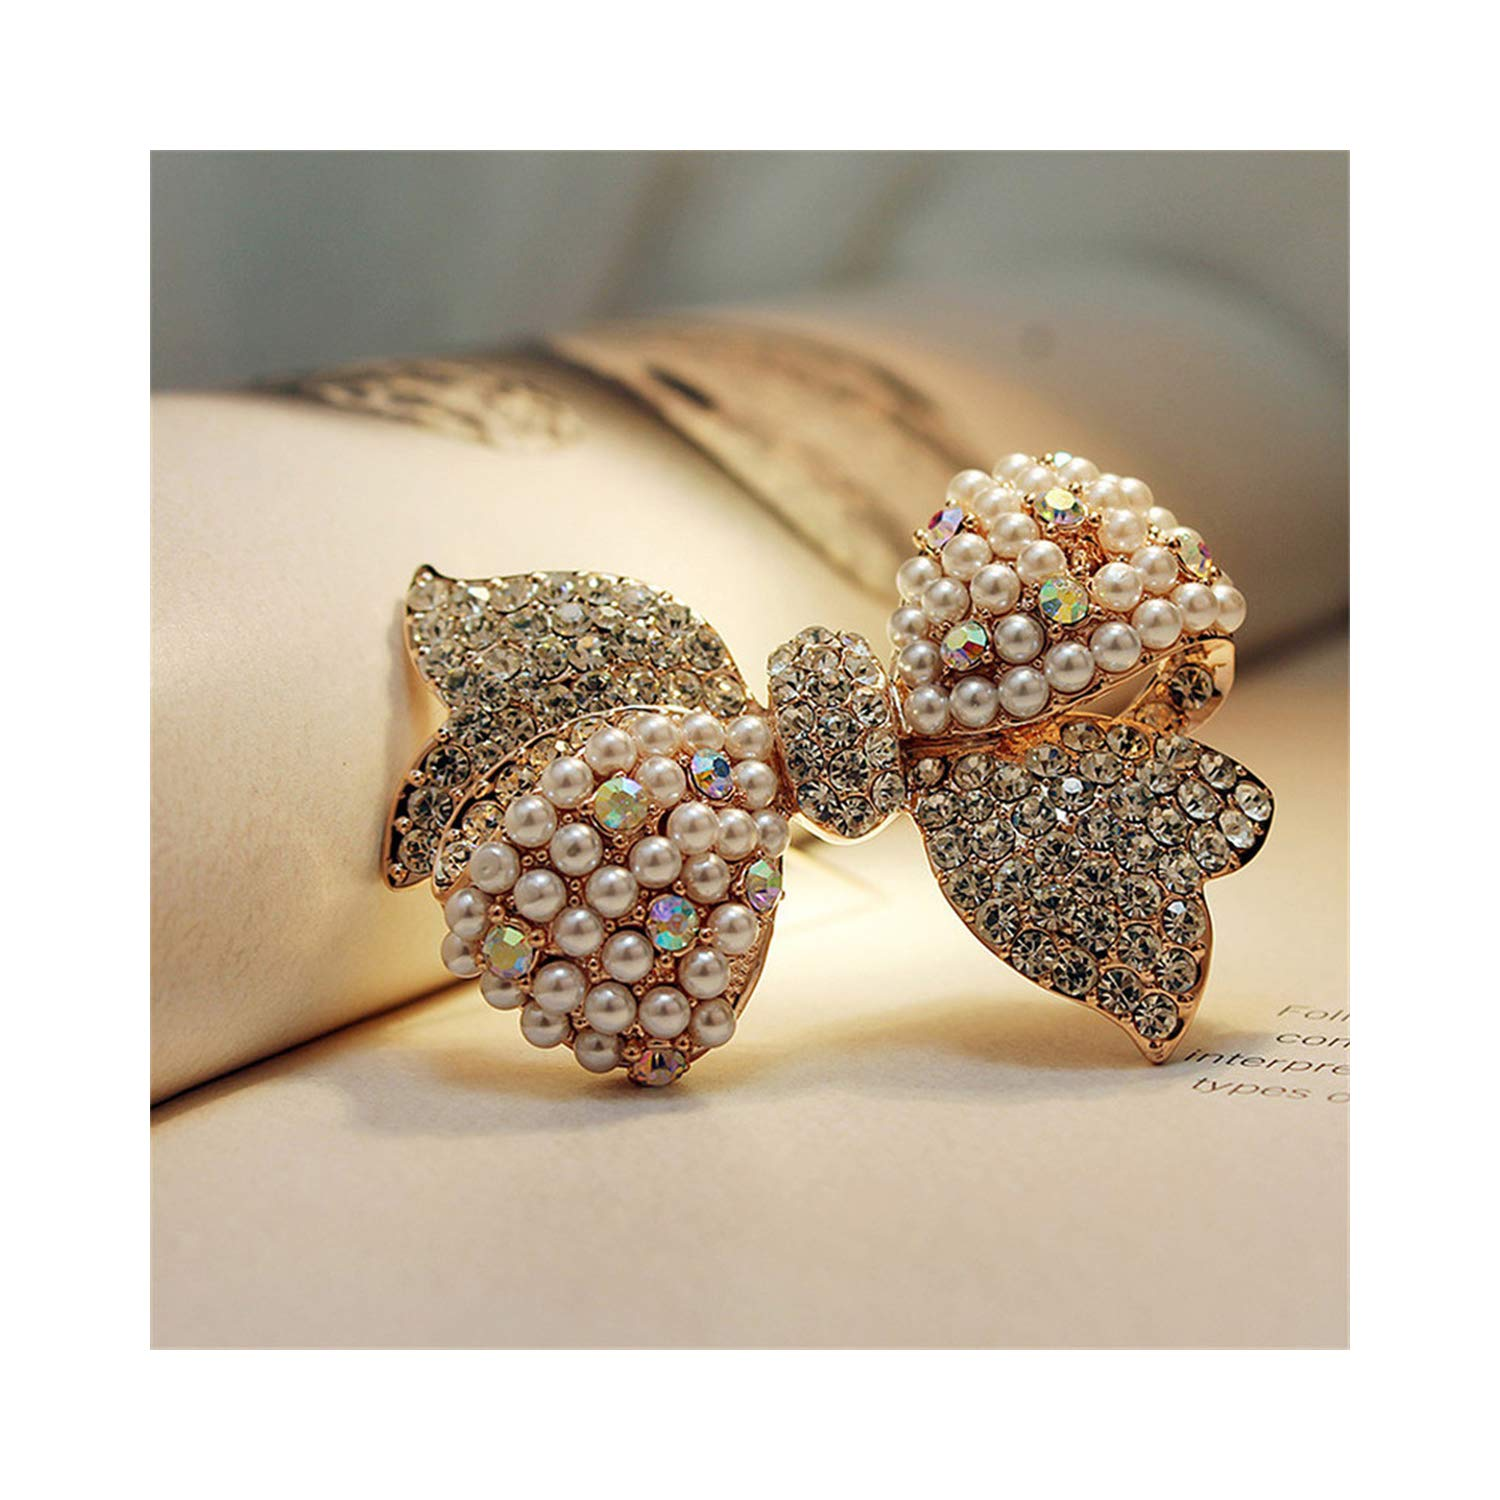 Women AUDIDI Brooches Pins, Rose Gold Color Zircon Crystal Luxury simulated pearl Bow Brooches Towel Buckle Fashion Jewelry for women MKY6139